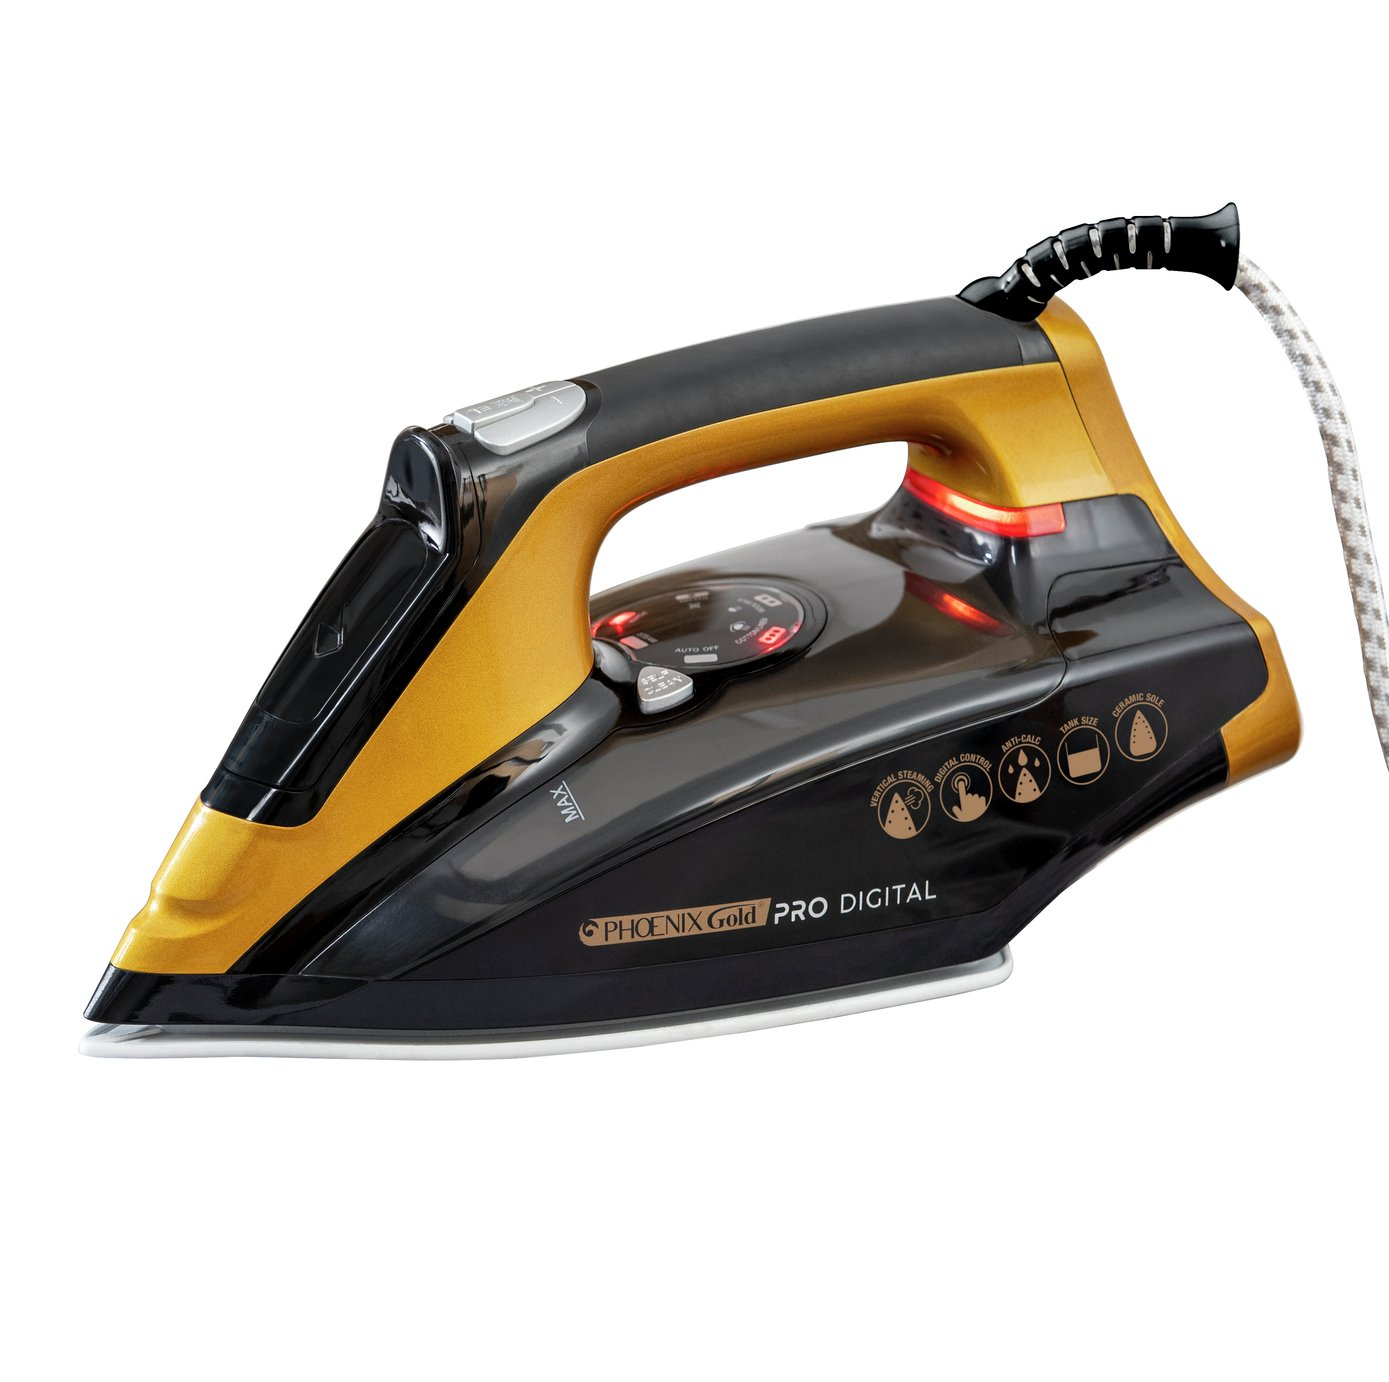 JML T-622P Phoenix Gold Pro Digital Steam Iron